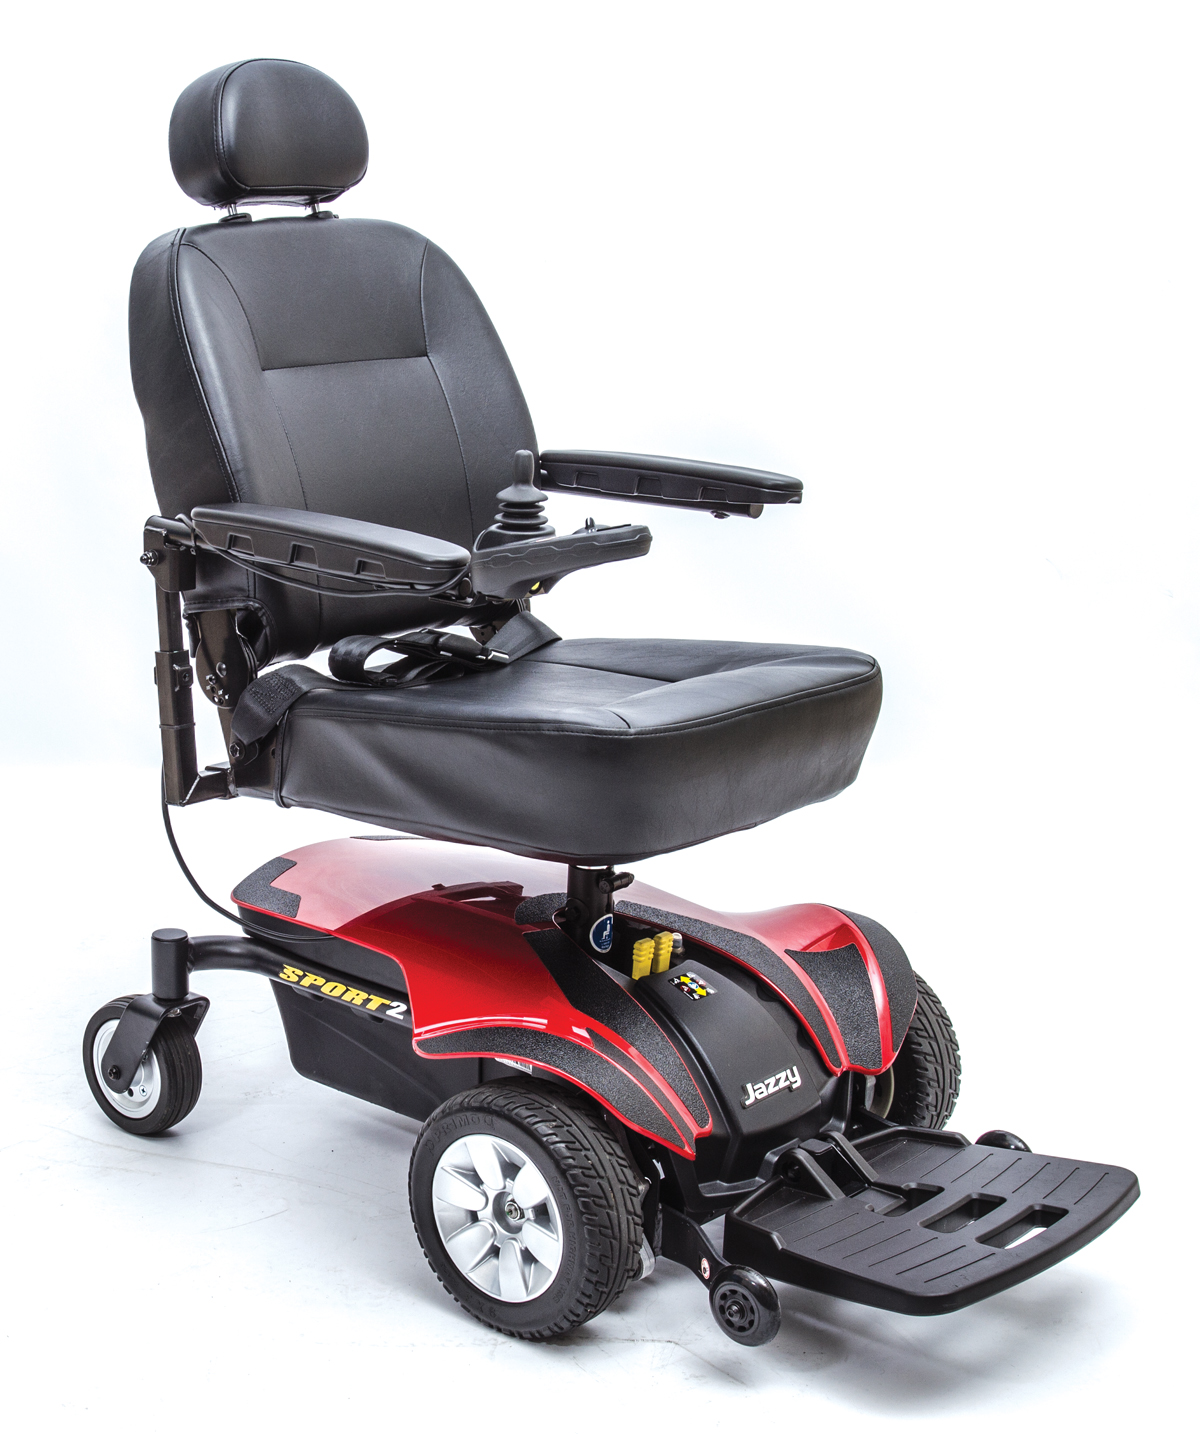 Active Medical & Mobility | Adamsville, TN | Home Medical Equipment, Knee Braces, Mobility Scooters, Electric Wheelchairs